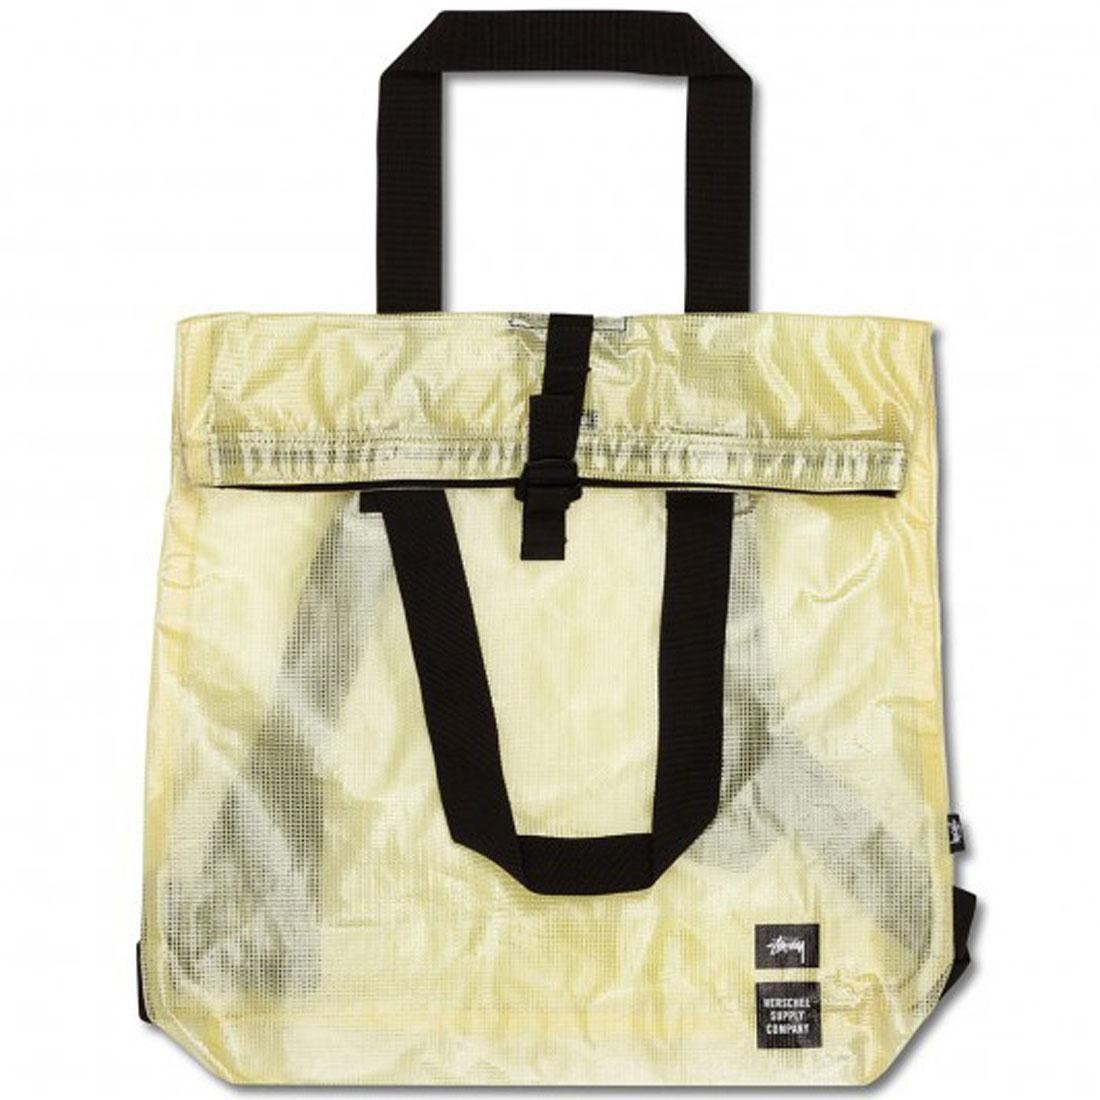 Stussy x Herschel Supply Co Tall Tote Bag - Clear Tarp Collab (white / clear)